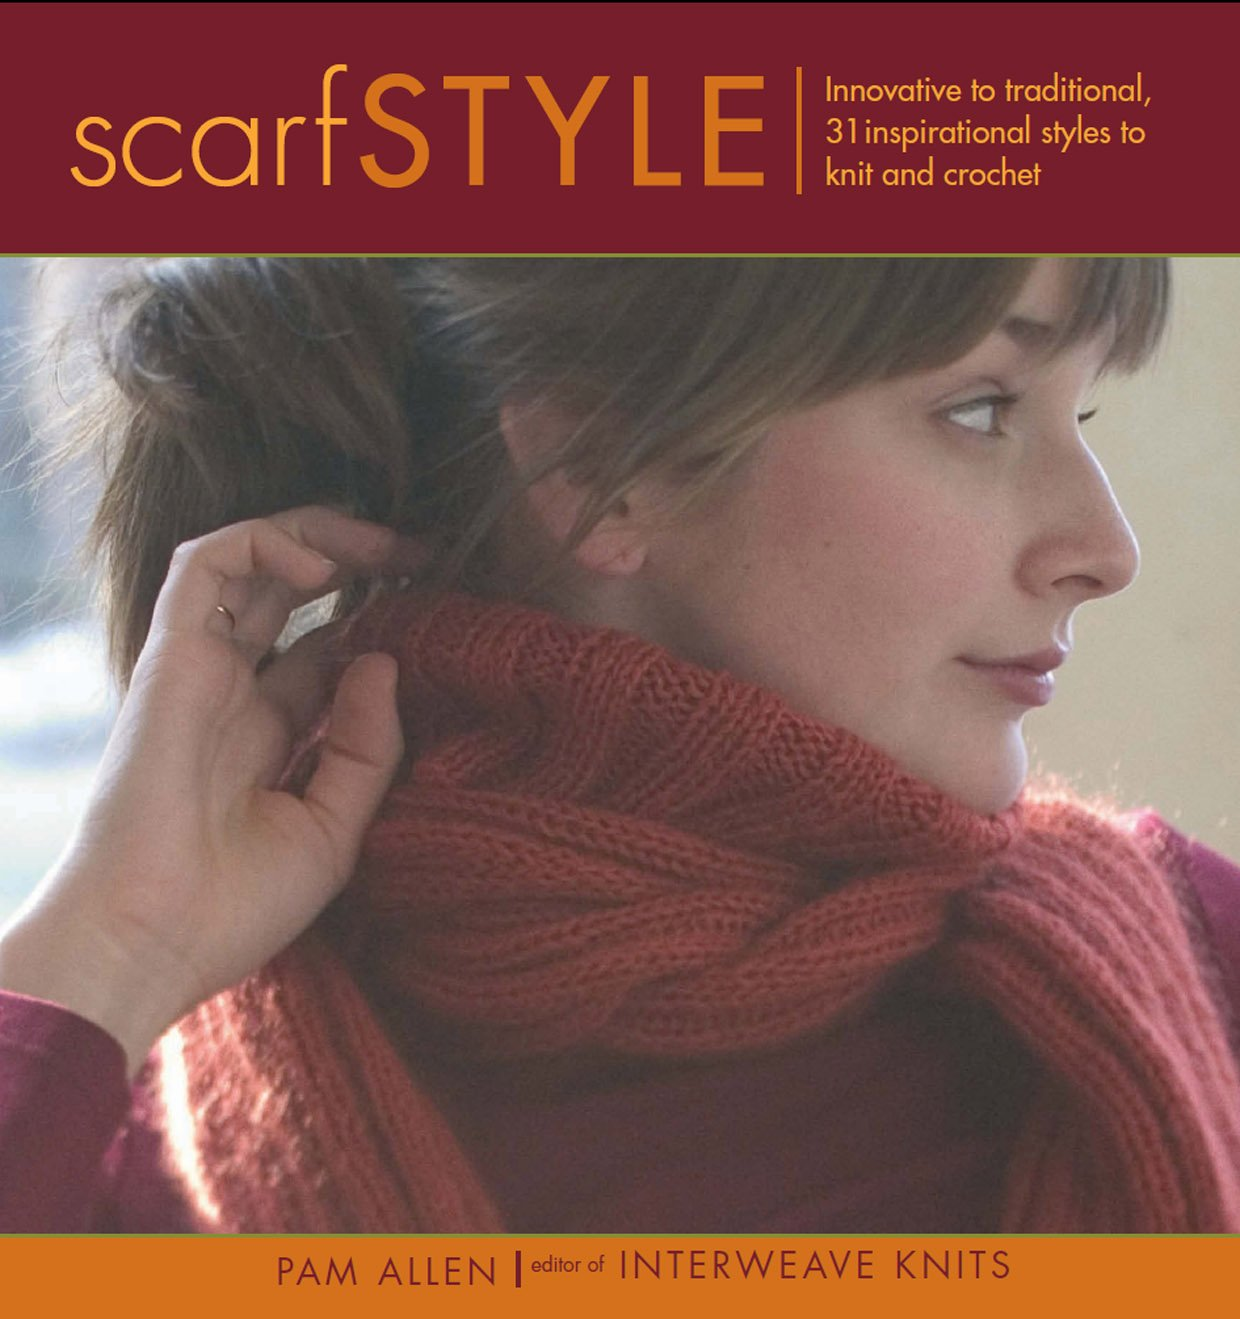 Scarf Style: Innovative to Traditional, 31 Inspirational Styles to Knit and Crochet